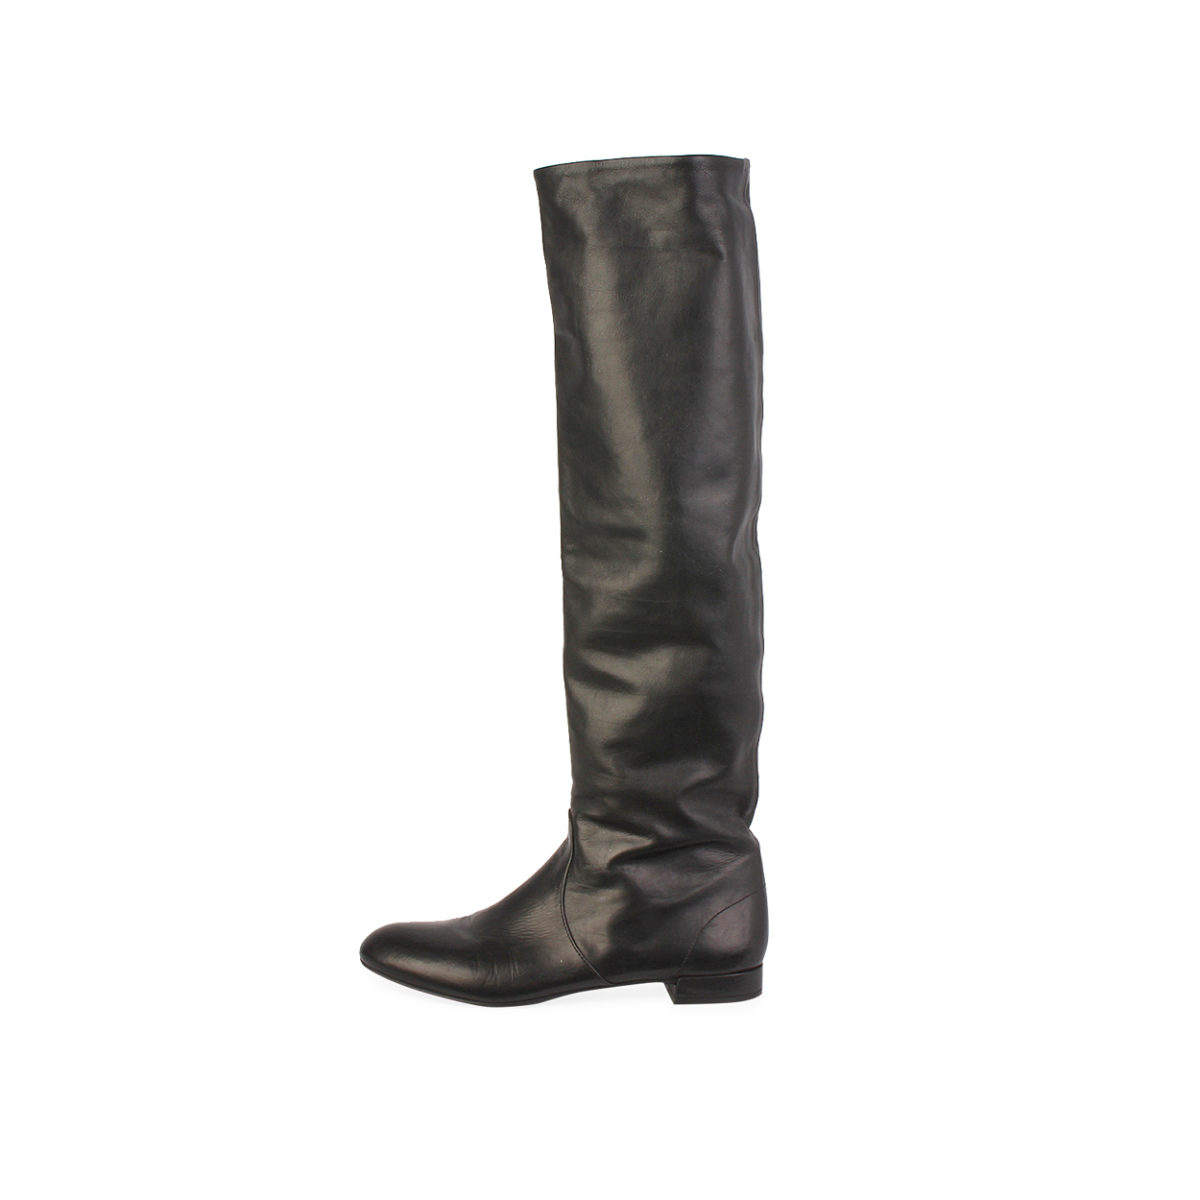 a7cb72355 PRADA Leather Knee High Boots Black - S: 36.5 (3.5) | Luxity